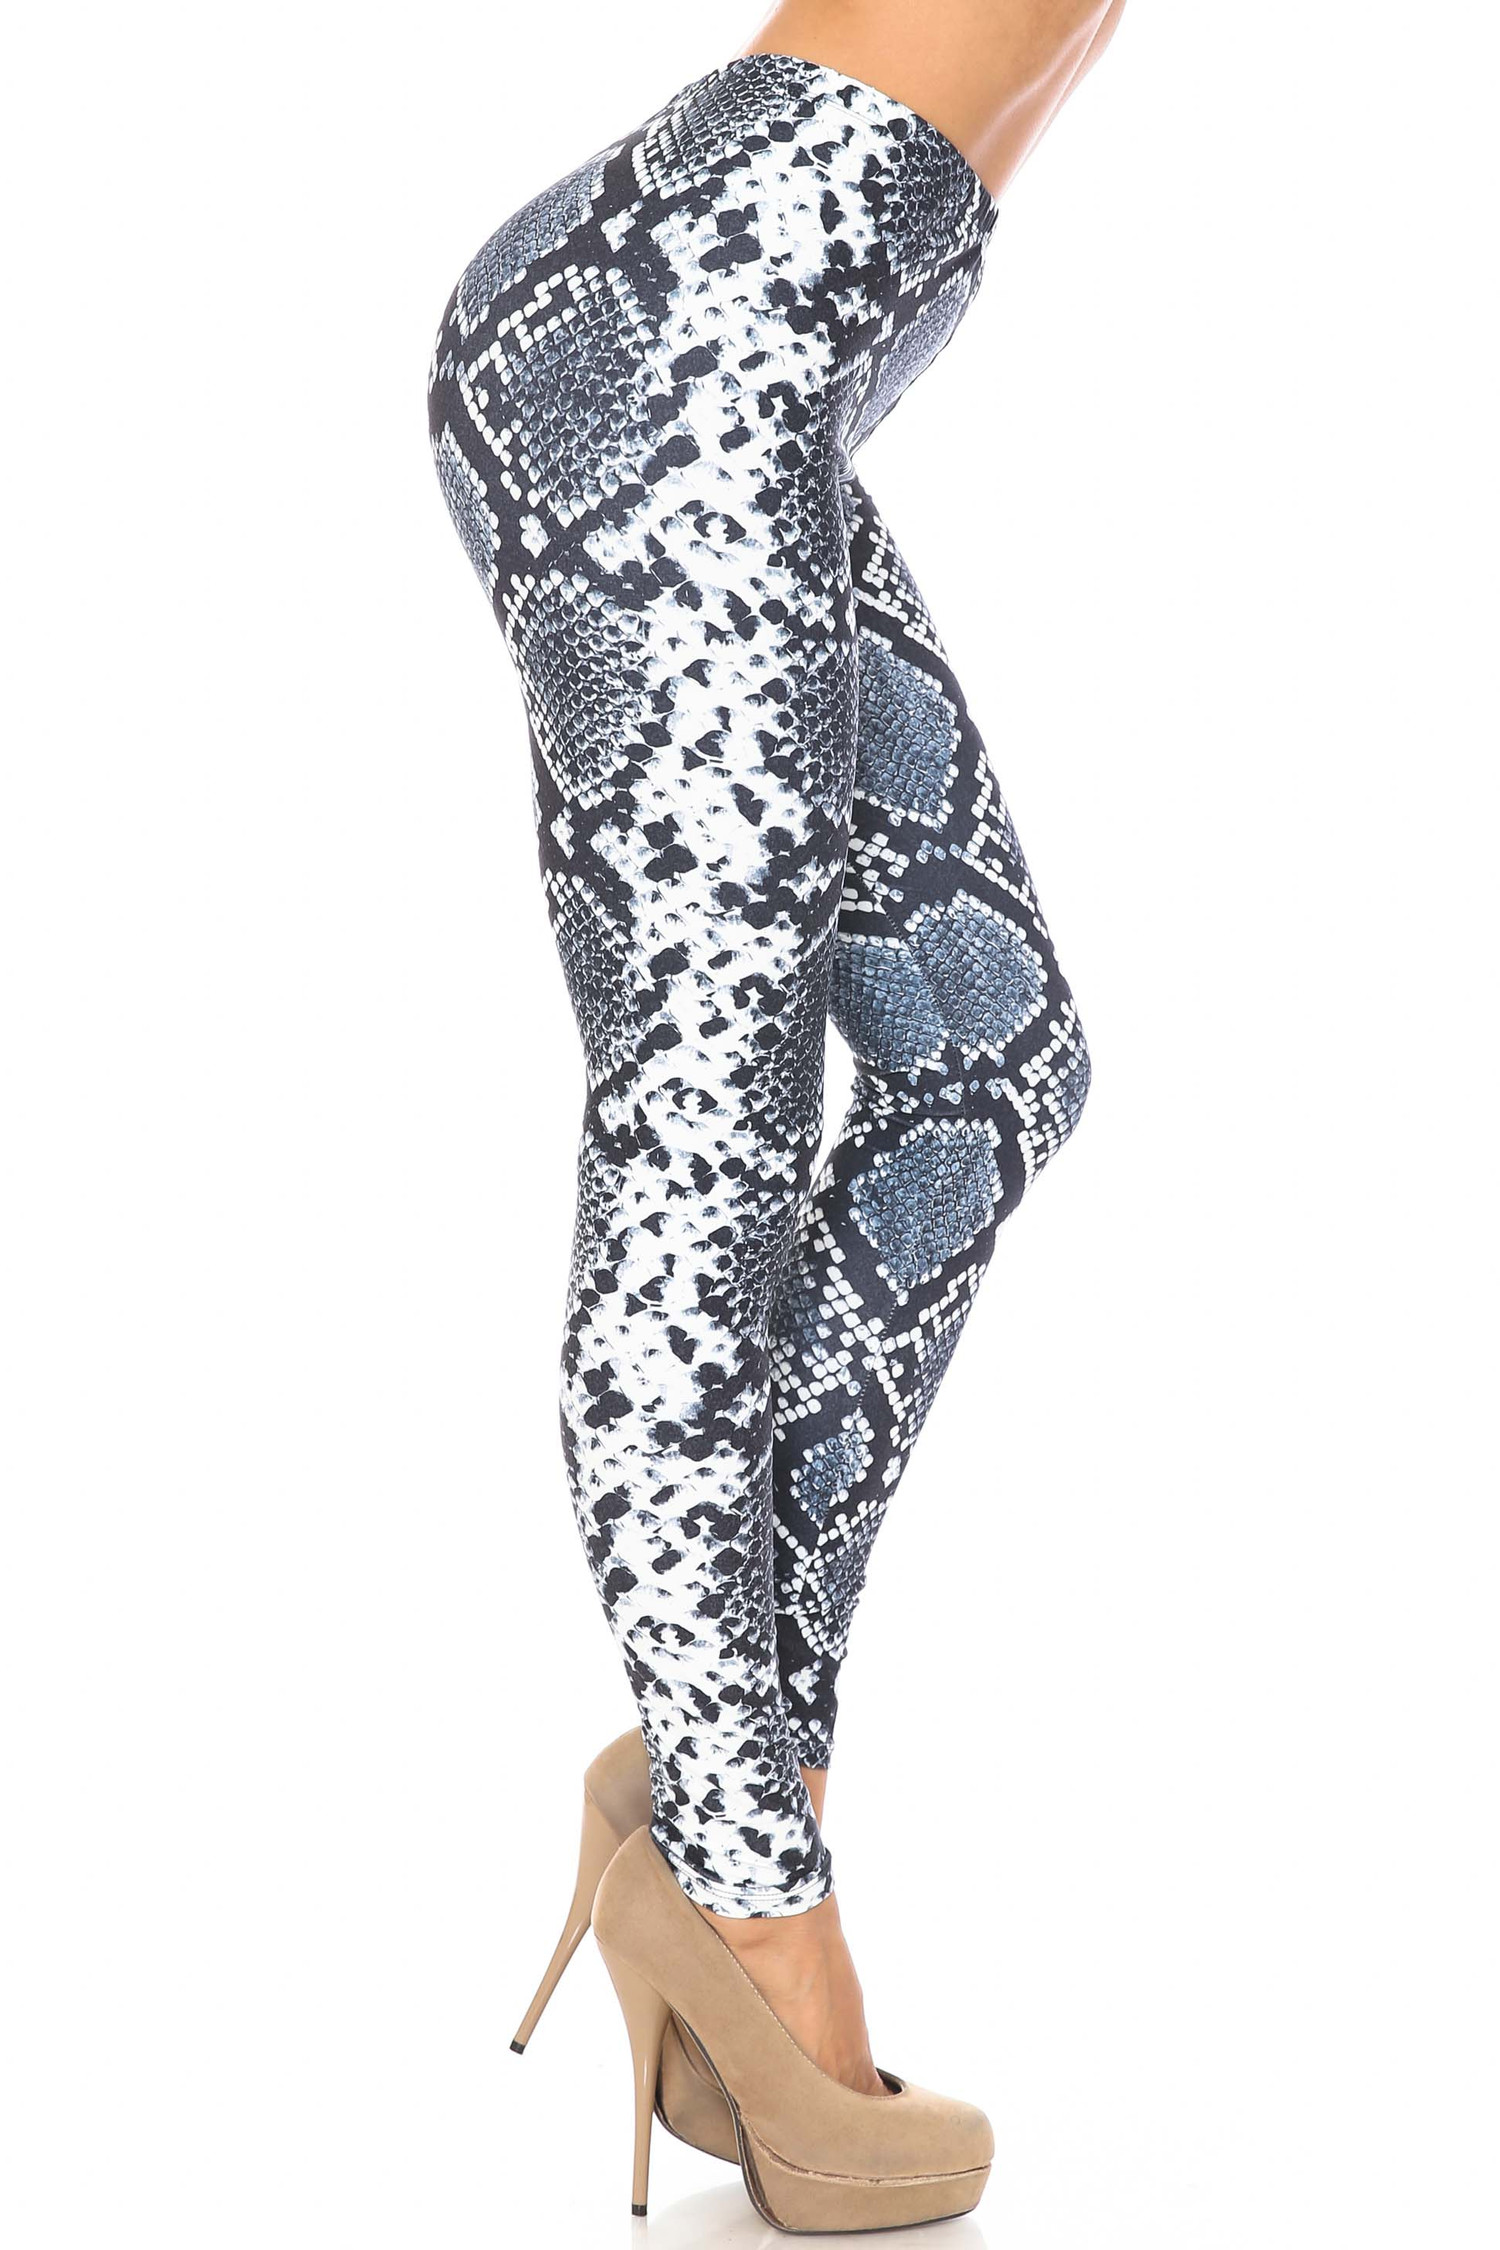 Right side of Creamy Soft Steel Blue Boa Plus Size Leggings - USA Fashion™